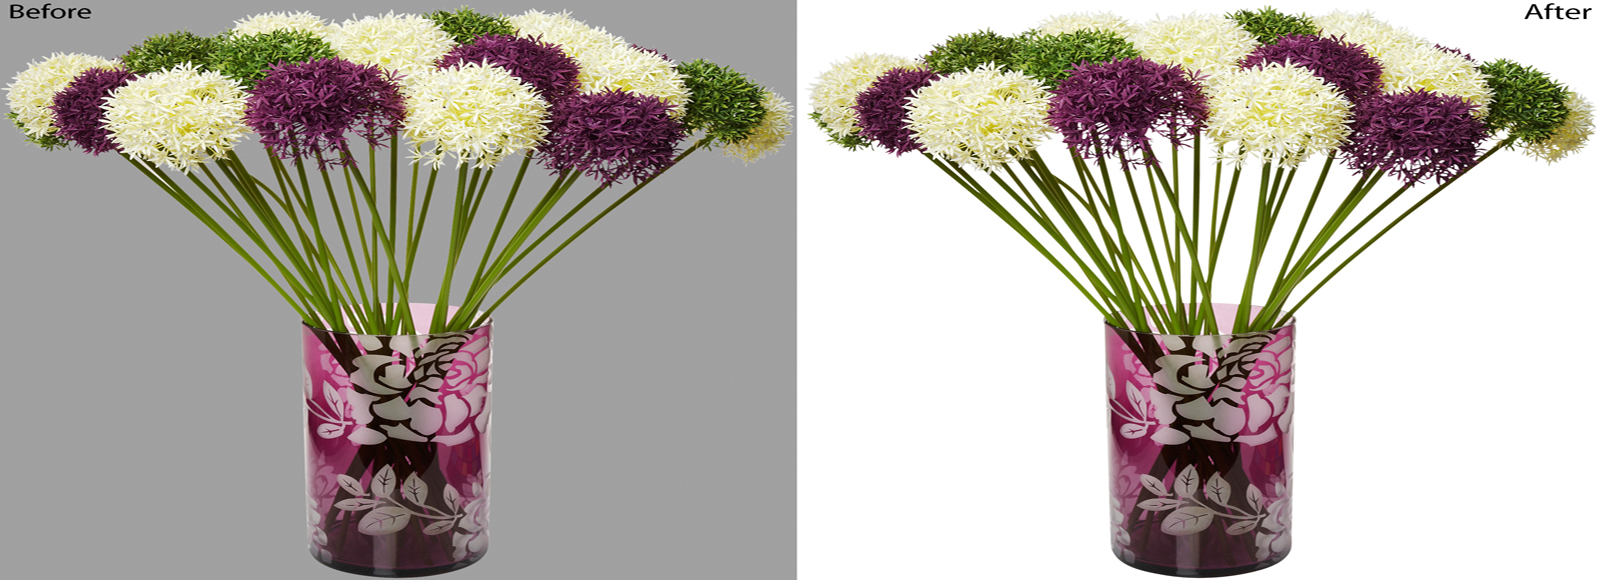 100 image  Clipping Path, Remove Background for Amazon,eBay,shopify